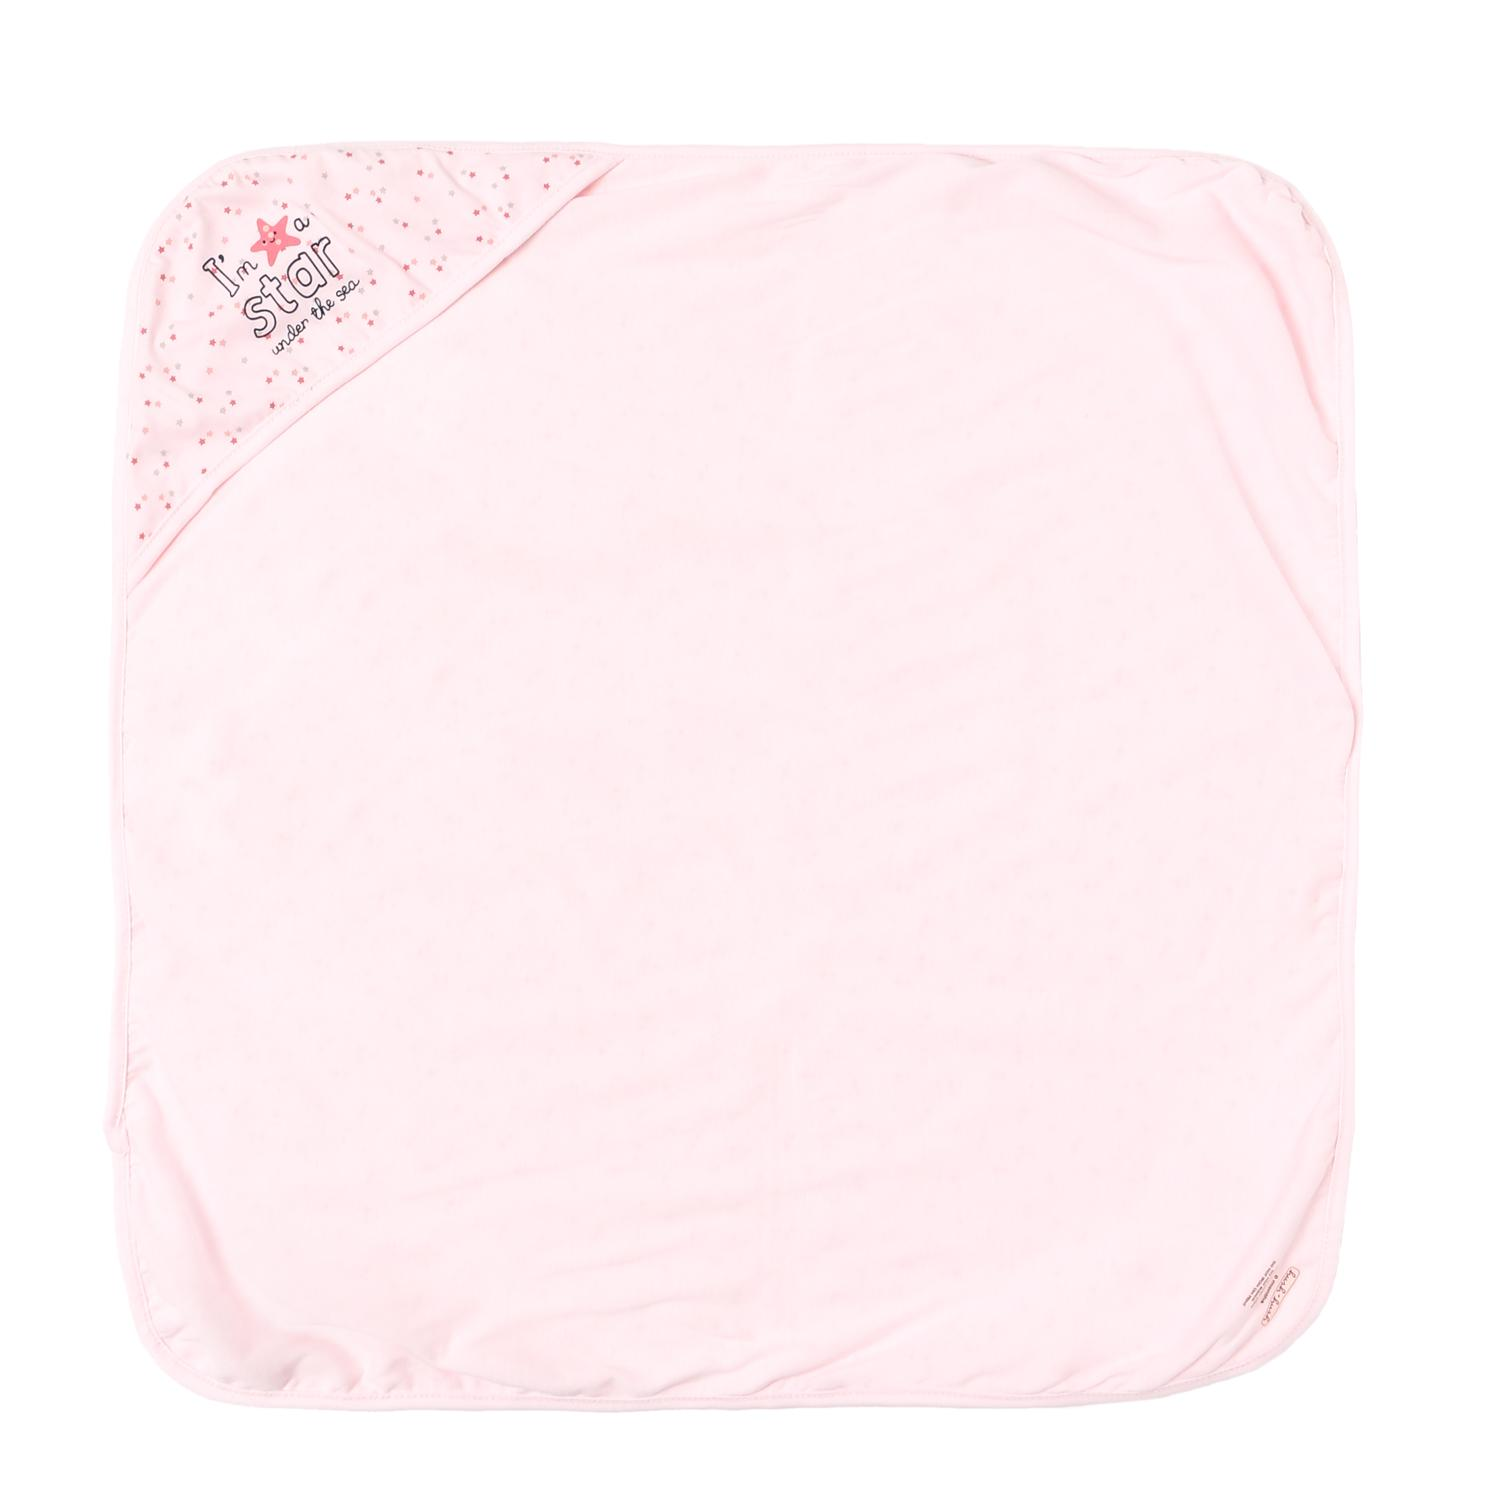 Hush Hush Baby Girls A Star Hooded Blanket 72 X 72cm In Pink By The Sm Store.